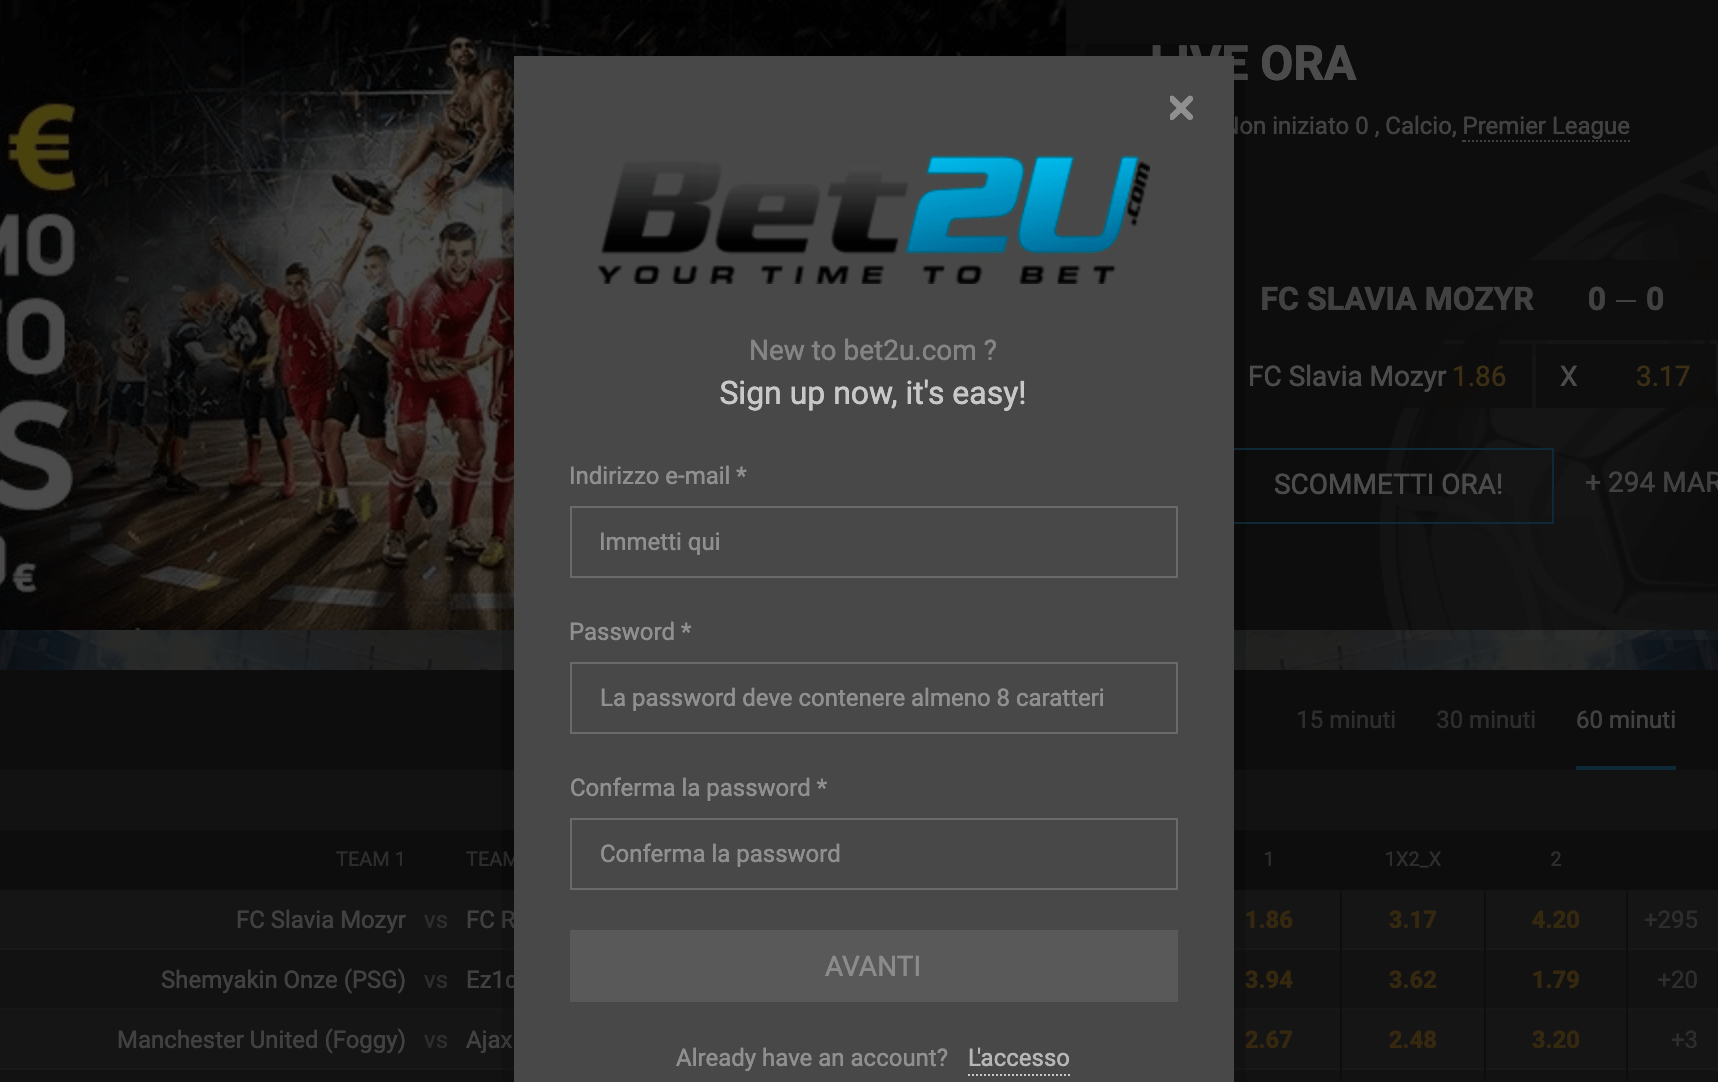 bet2u registrati apri nuovo account